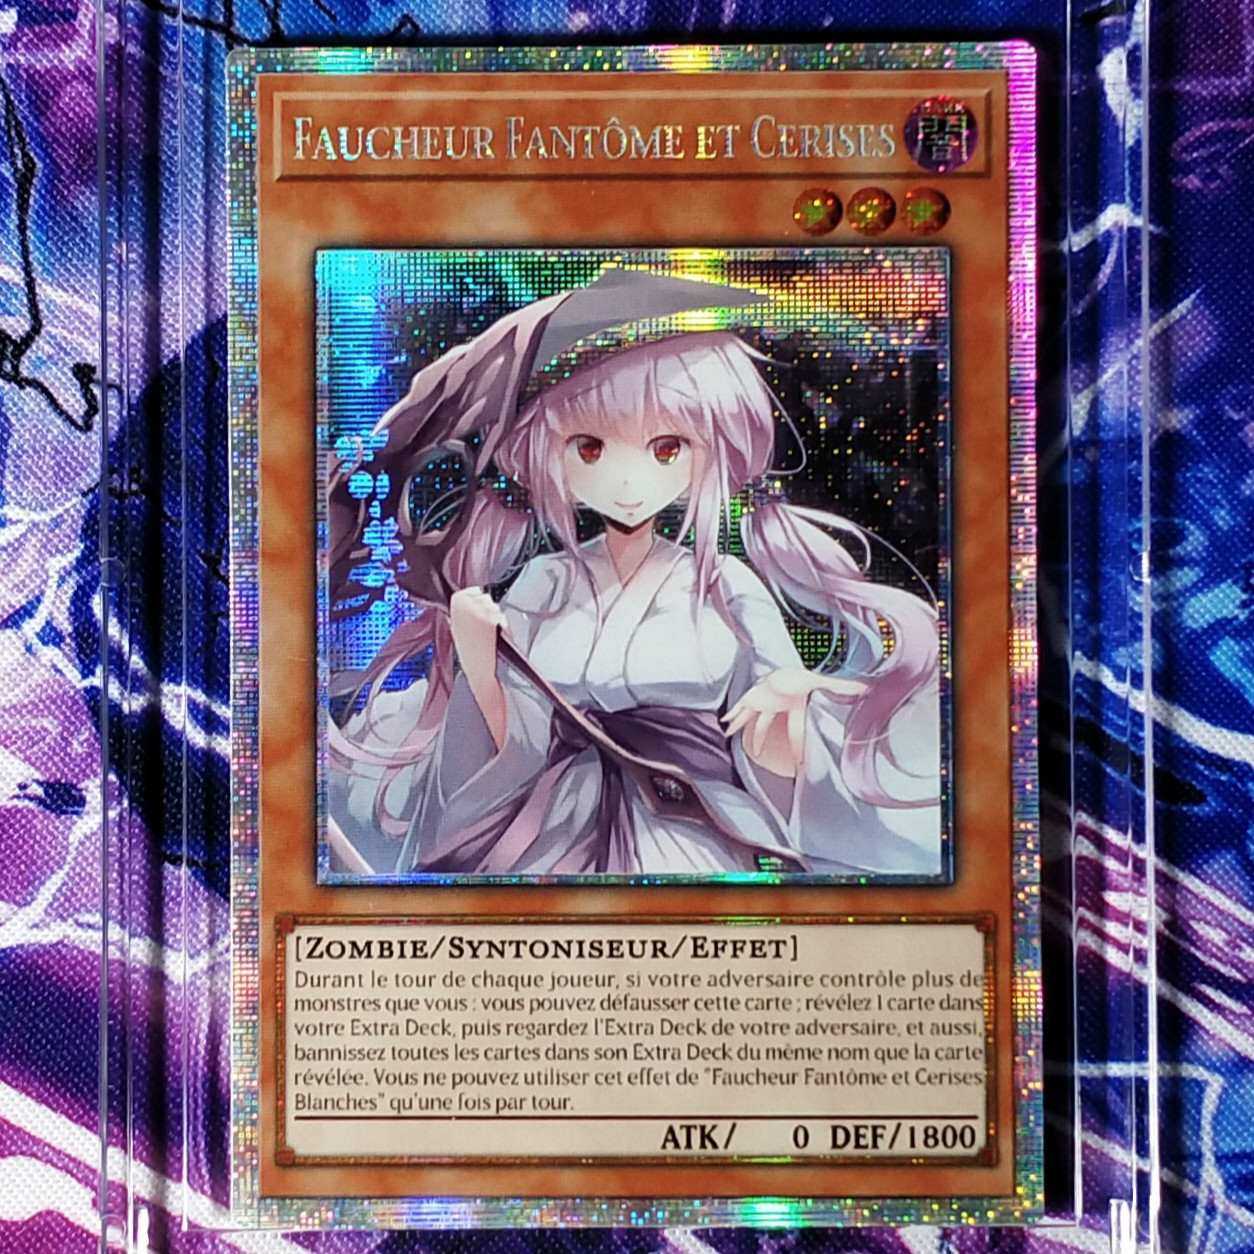 Yu Gi Oh French Ghost Reaper Winter Cherries DIY Colorful Toys Hobbies Hobby Collectibles Game Collection Anime Cards